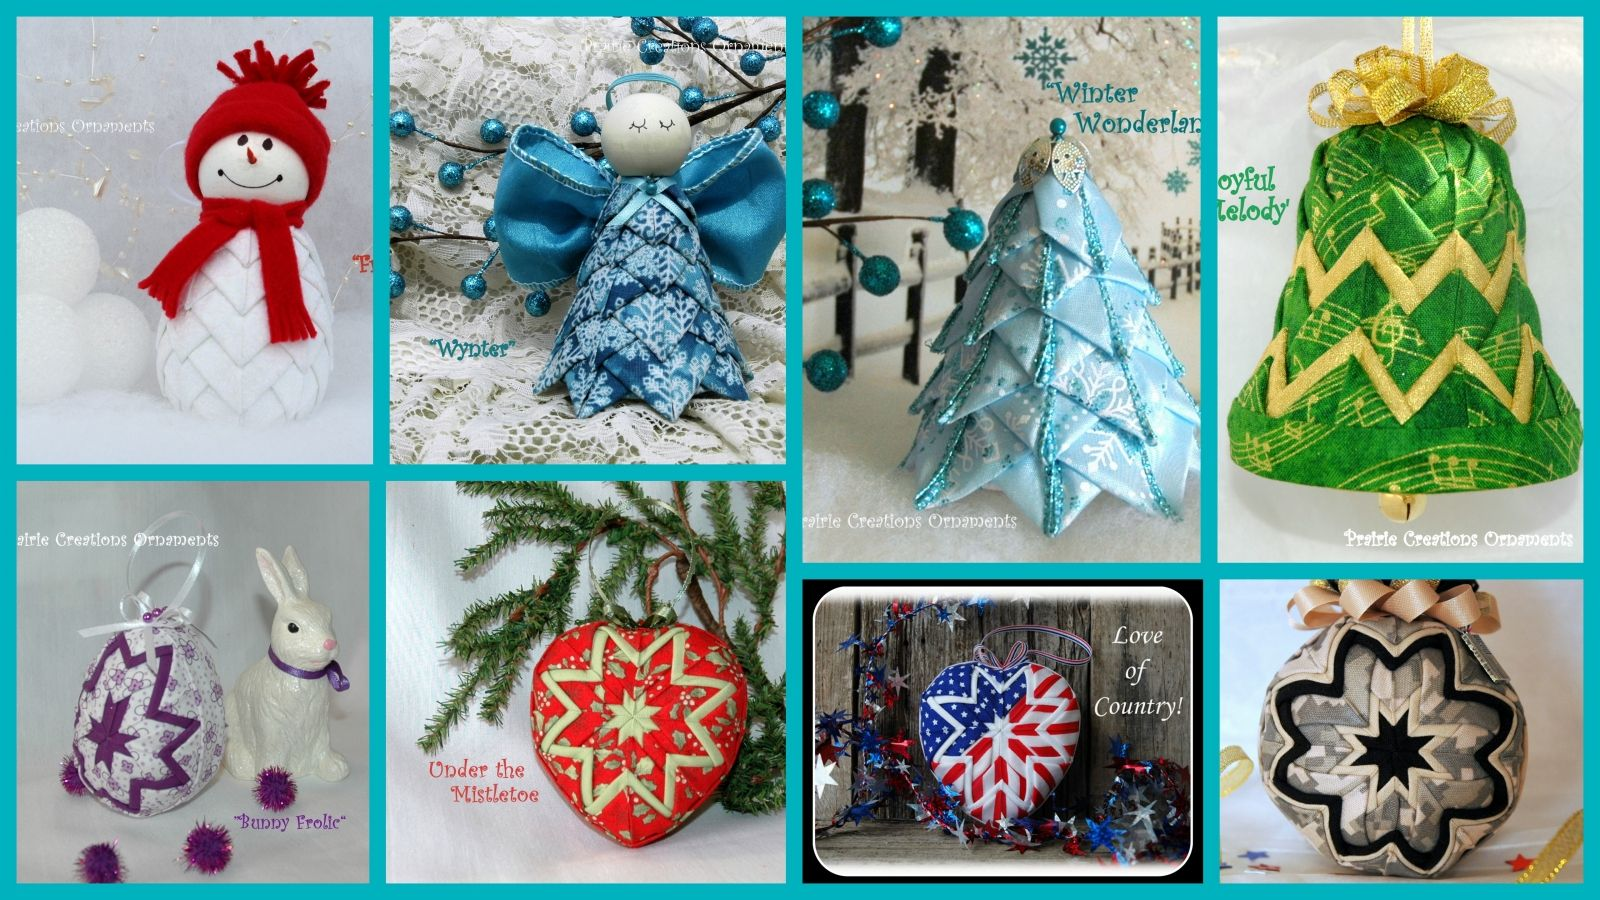 Ornament tutorials and e books kits for ornaments for holiday kits for ornaments for holiday decorating and gifts christmas ornaments easter ornaments holiday ornaments no sew fabric ornaments negle Images